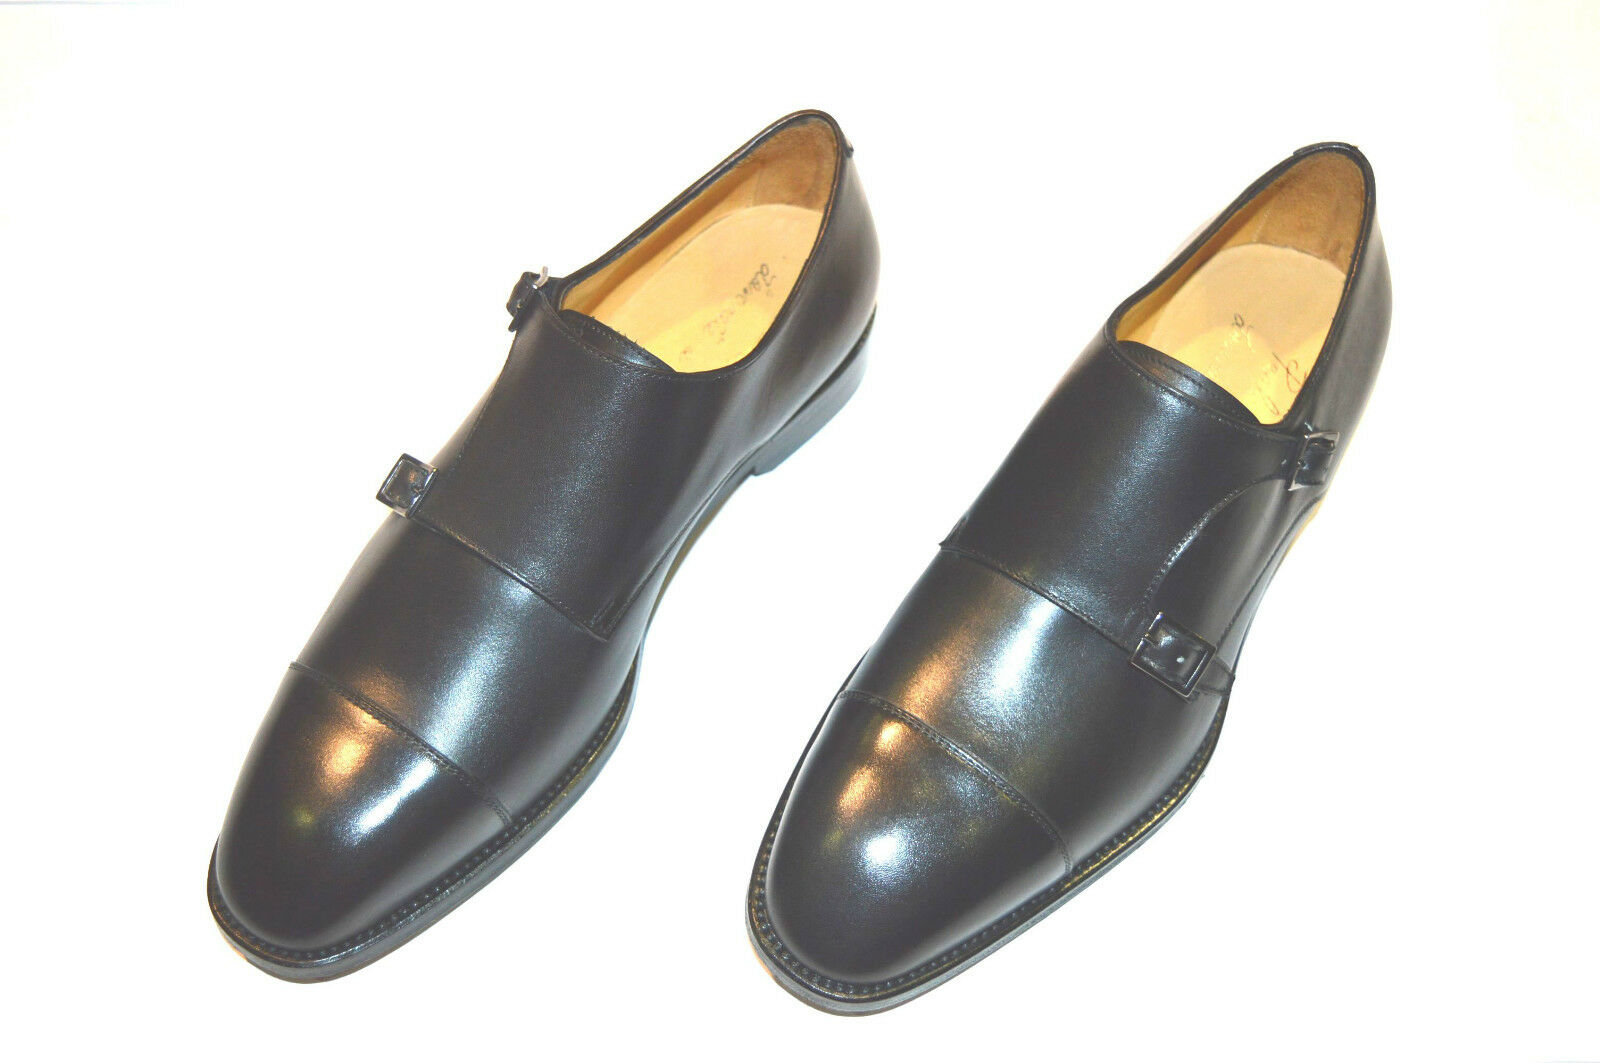 New PAOLO SCAFORA Leather Monk Strap shoes Size Size Size Eu 45.5 Uk 11.5 Us 12.5 (Cod 4) 8b0ade